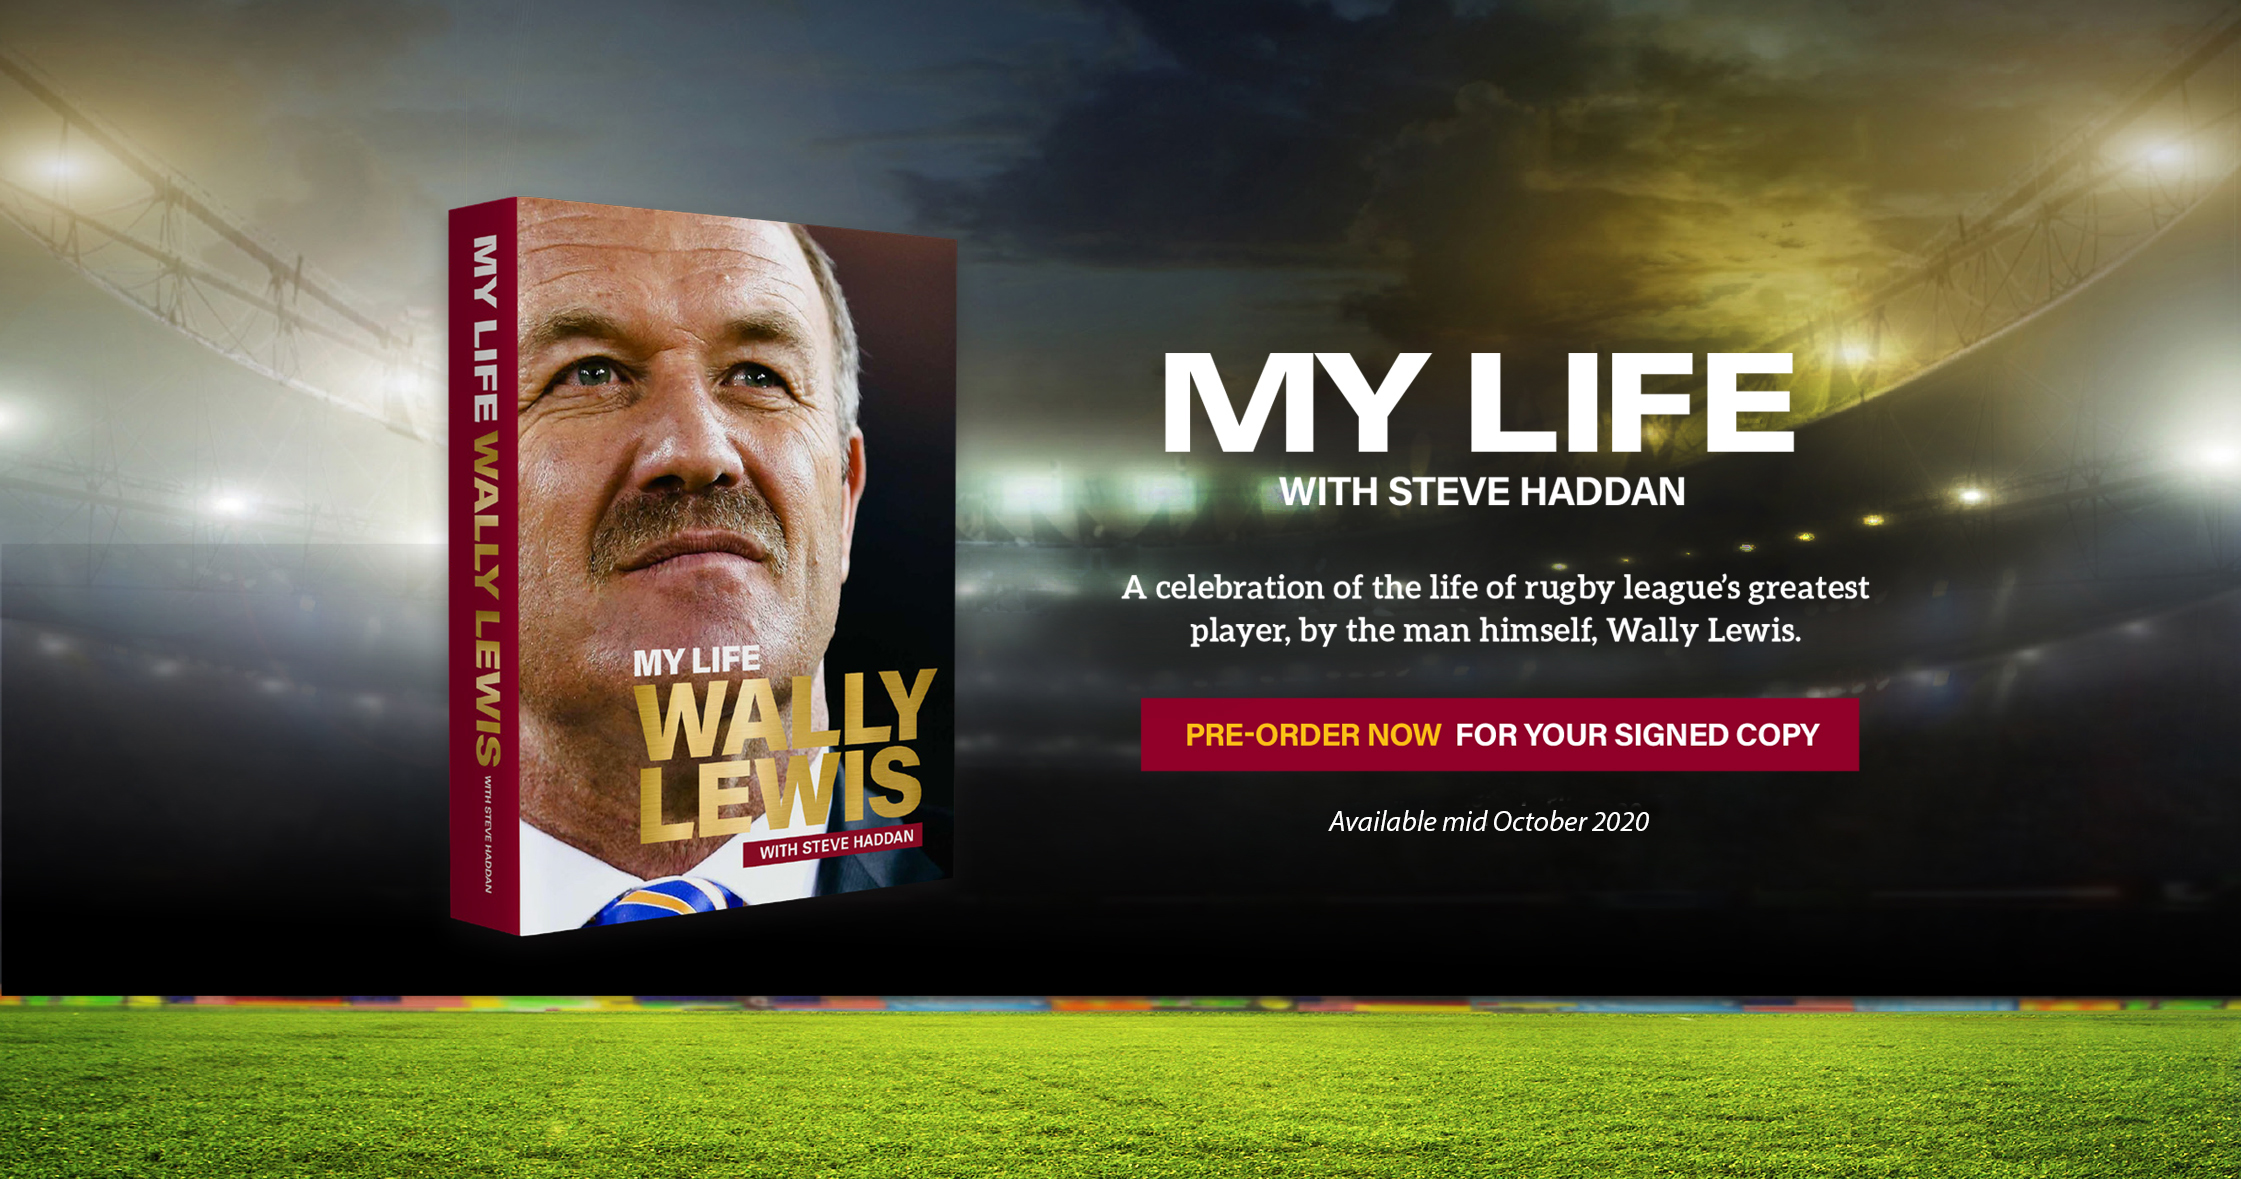 FB_MY LIFE_WallyLewis_Banners_website